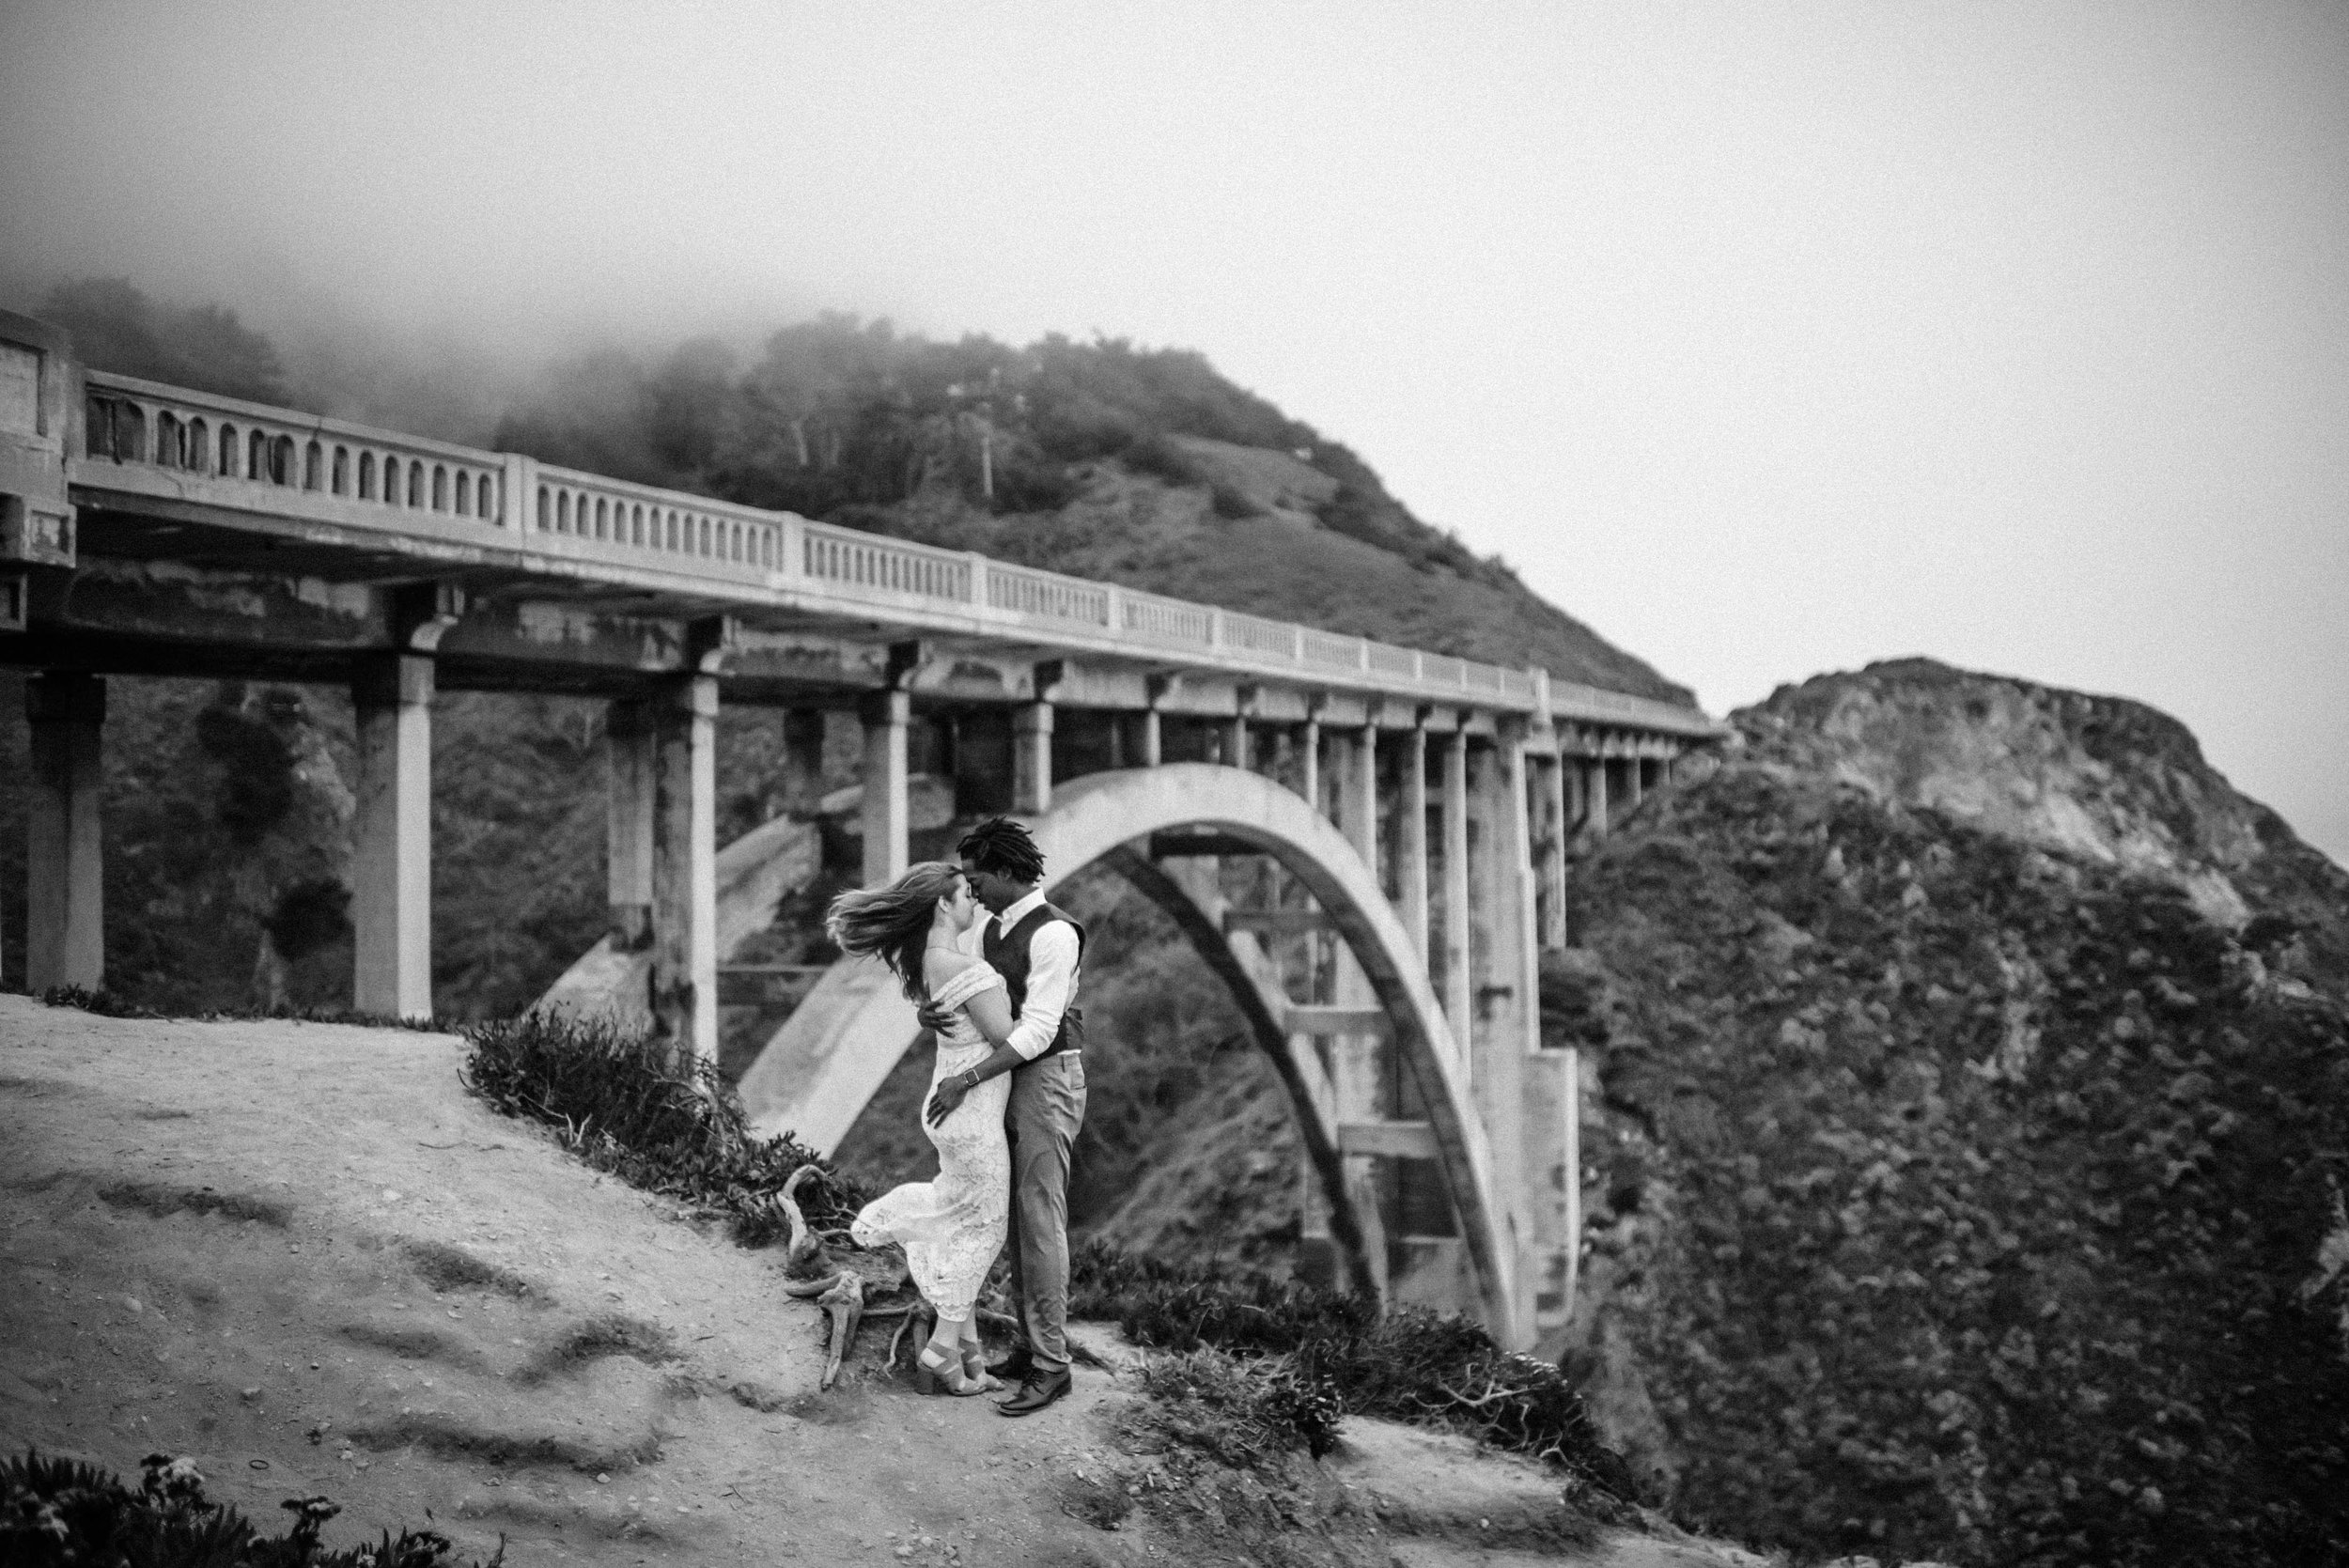 atlanta georgia big sur san francisco california bay area sf oakland wedding portrait adventure engageement nontraditional tattooed couple photographer-125.jpg